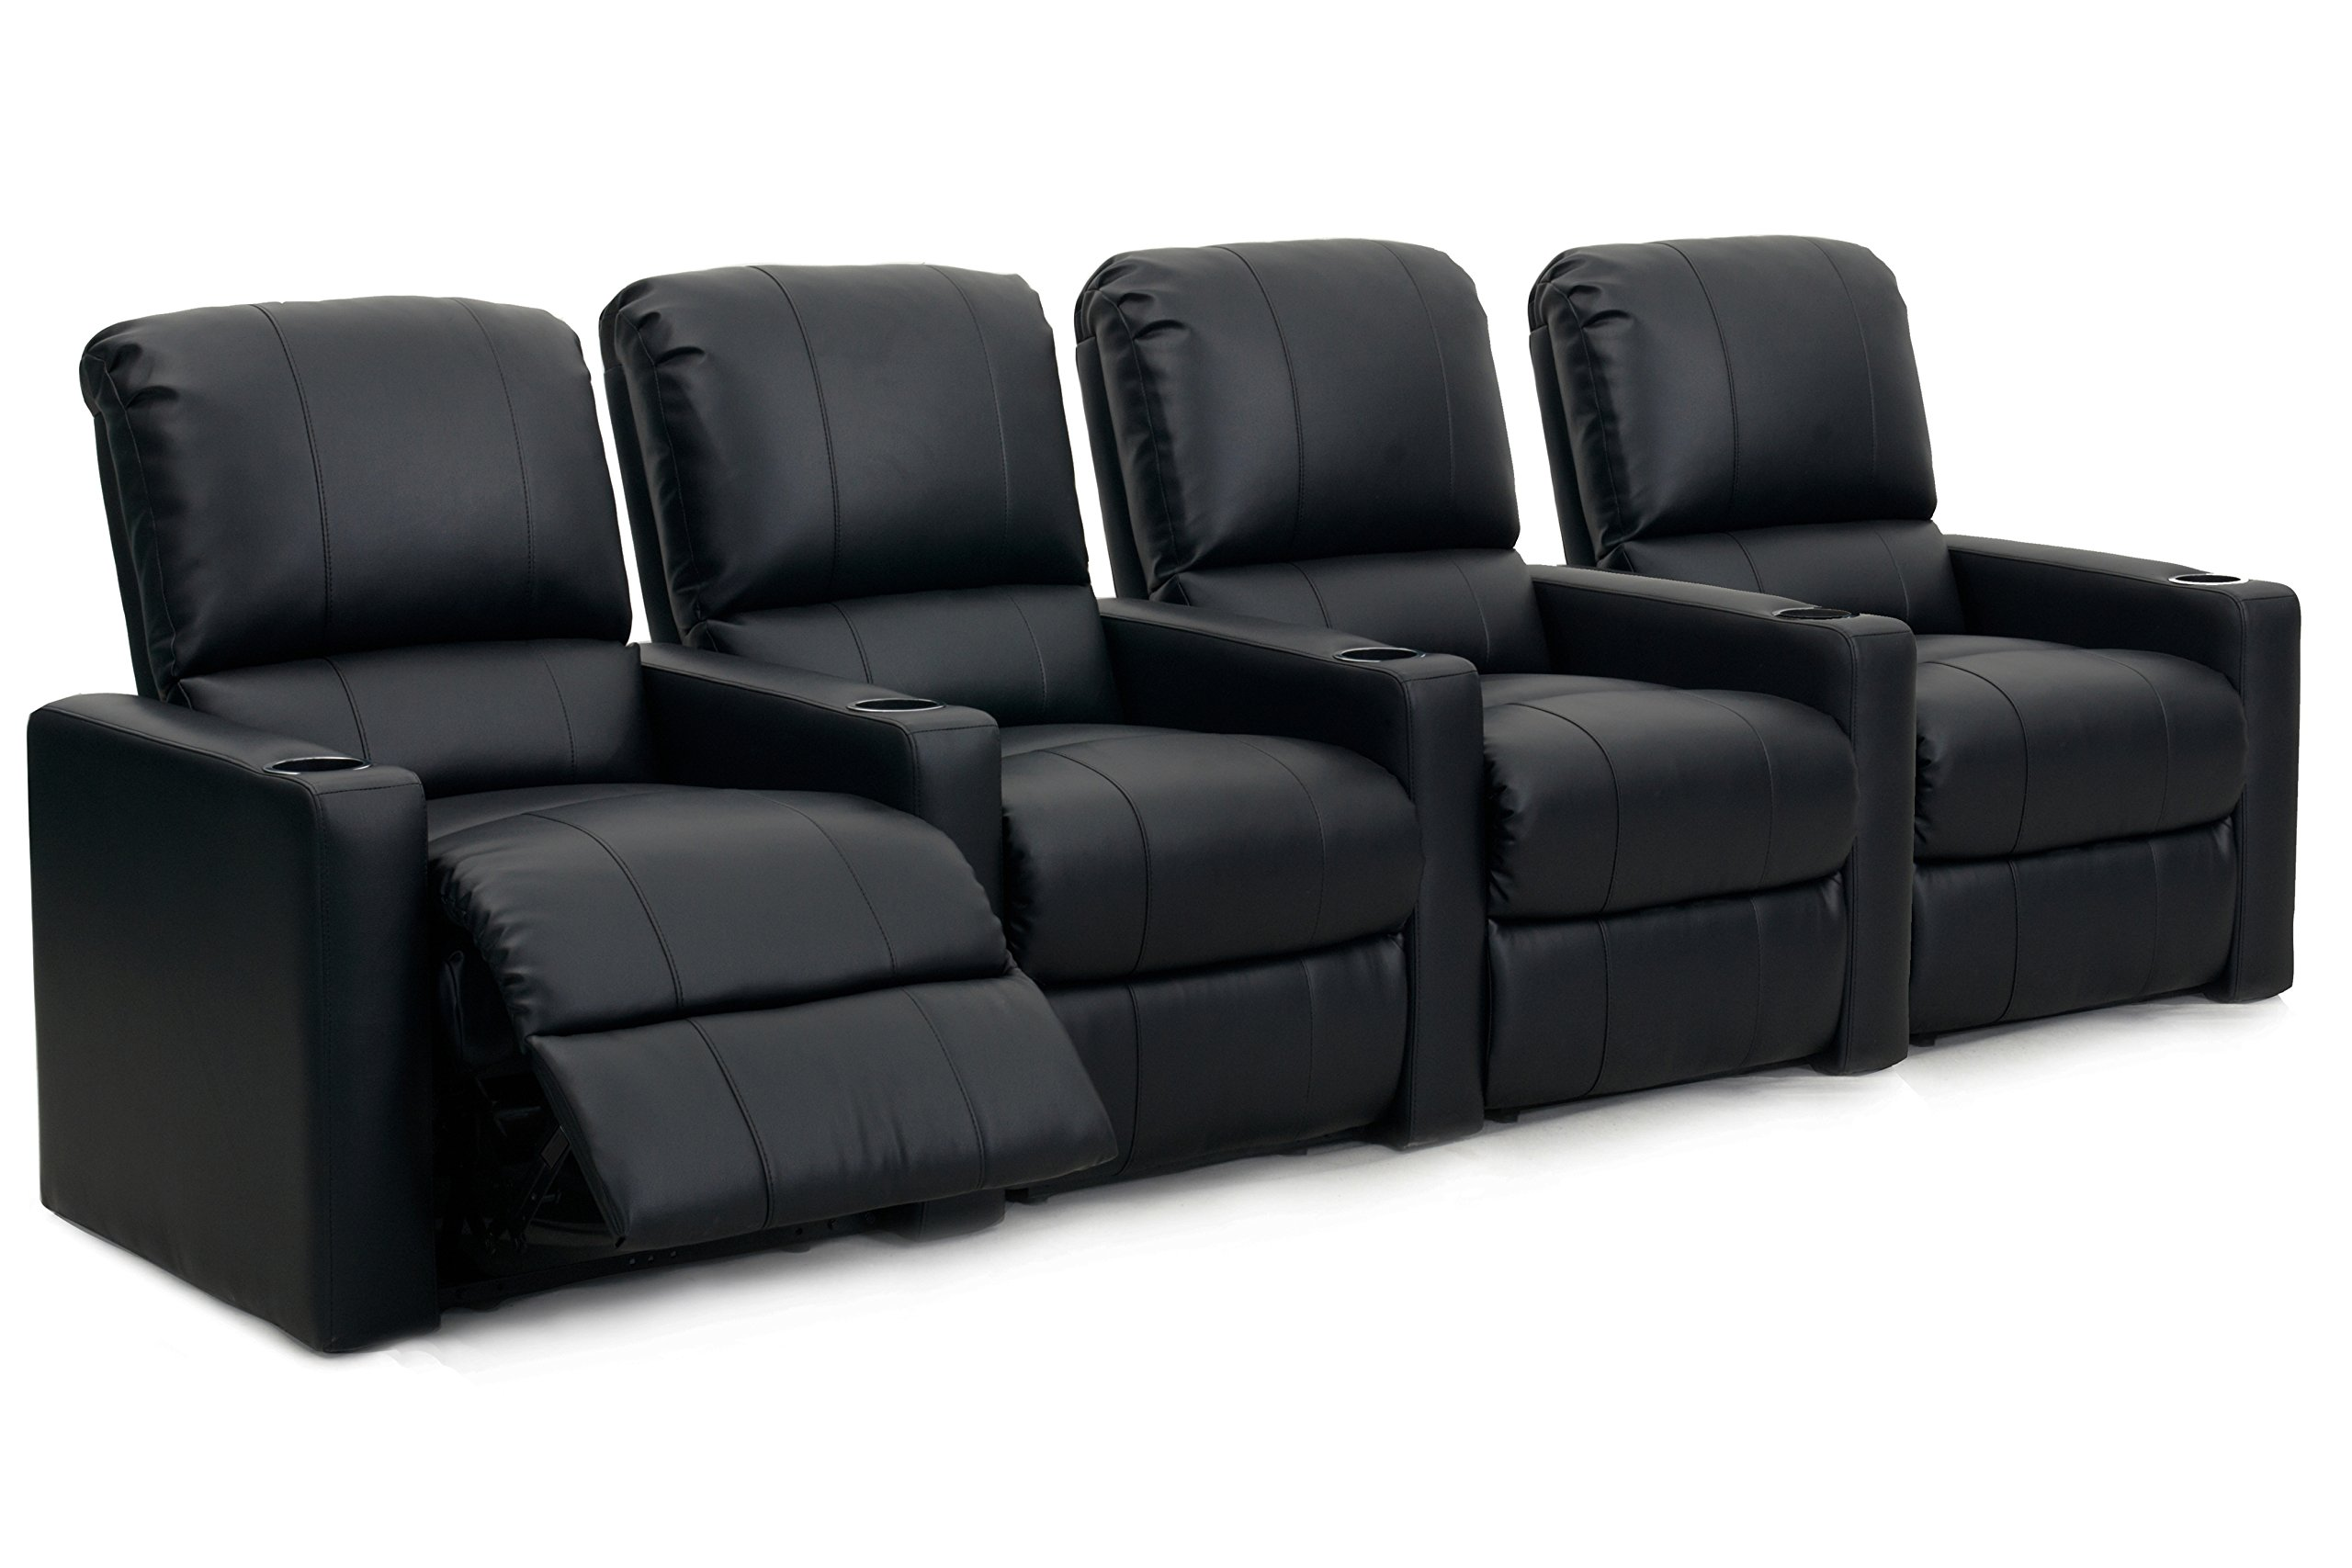 Octane Seating CHARGER-R4SM-BND-BL Octane Charger XS300 Leather Home Theater Recliner Set (Row of 4)